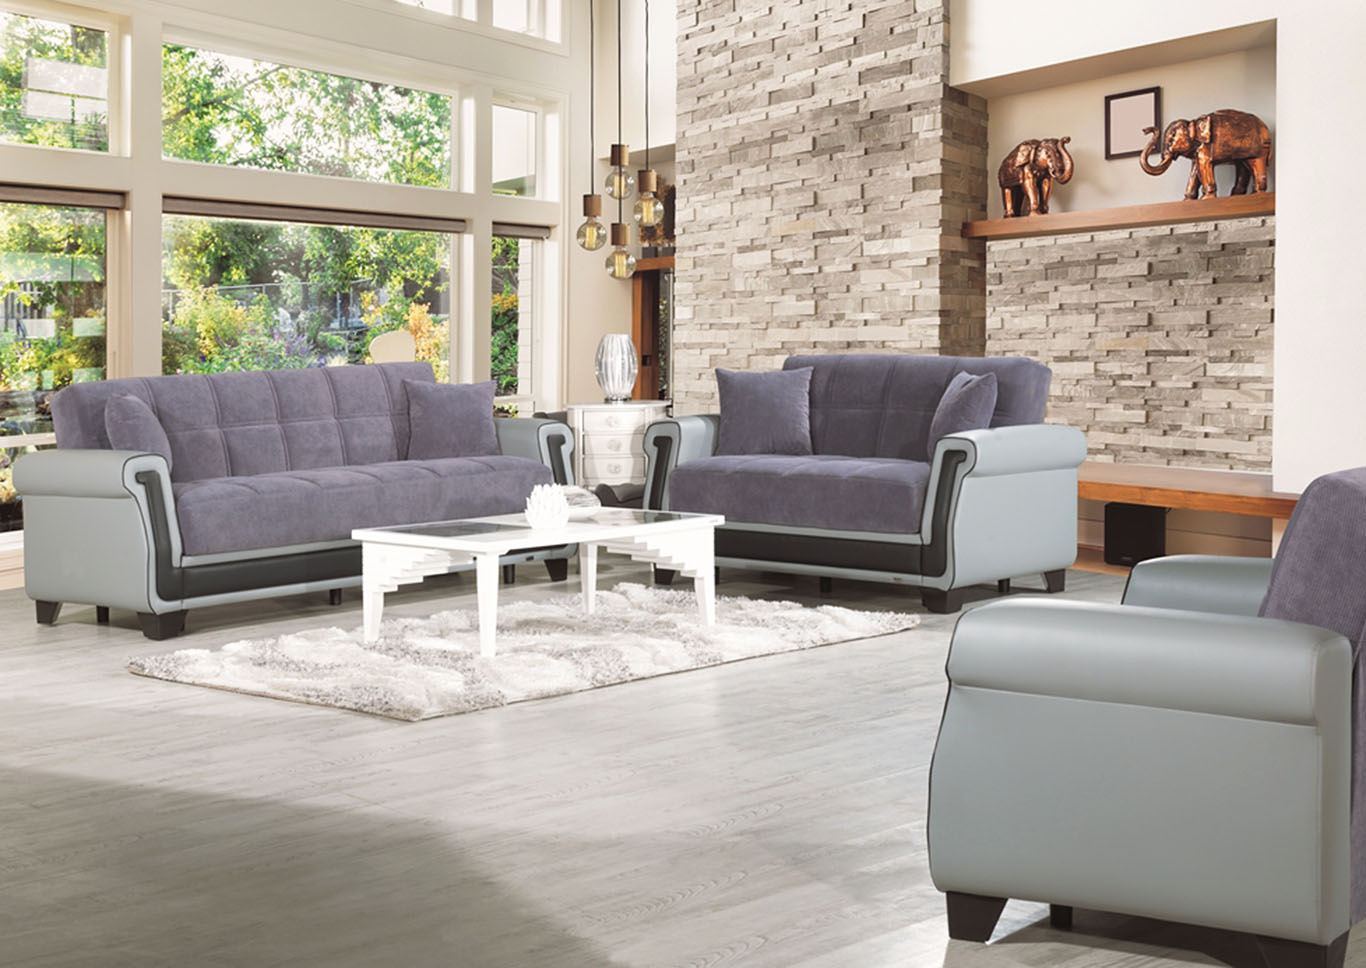 Proline Gray Microfiber Sofabed & Loveseat,CasaMode Functional Furniture